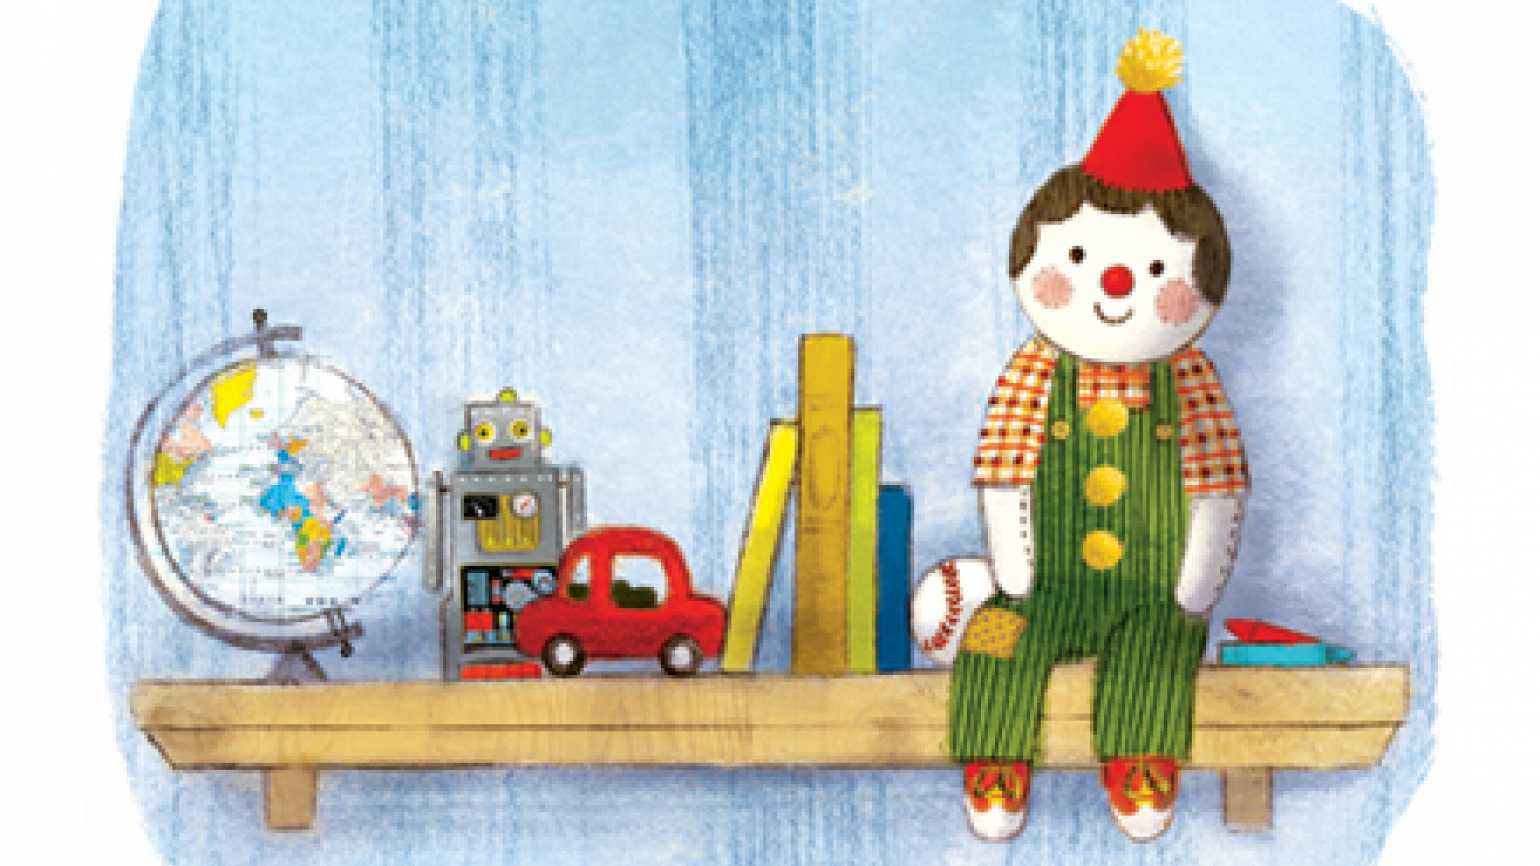 An artist's rendering of Big Jon, on a shelf with other toys